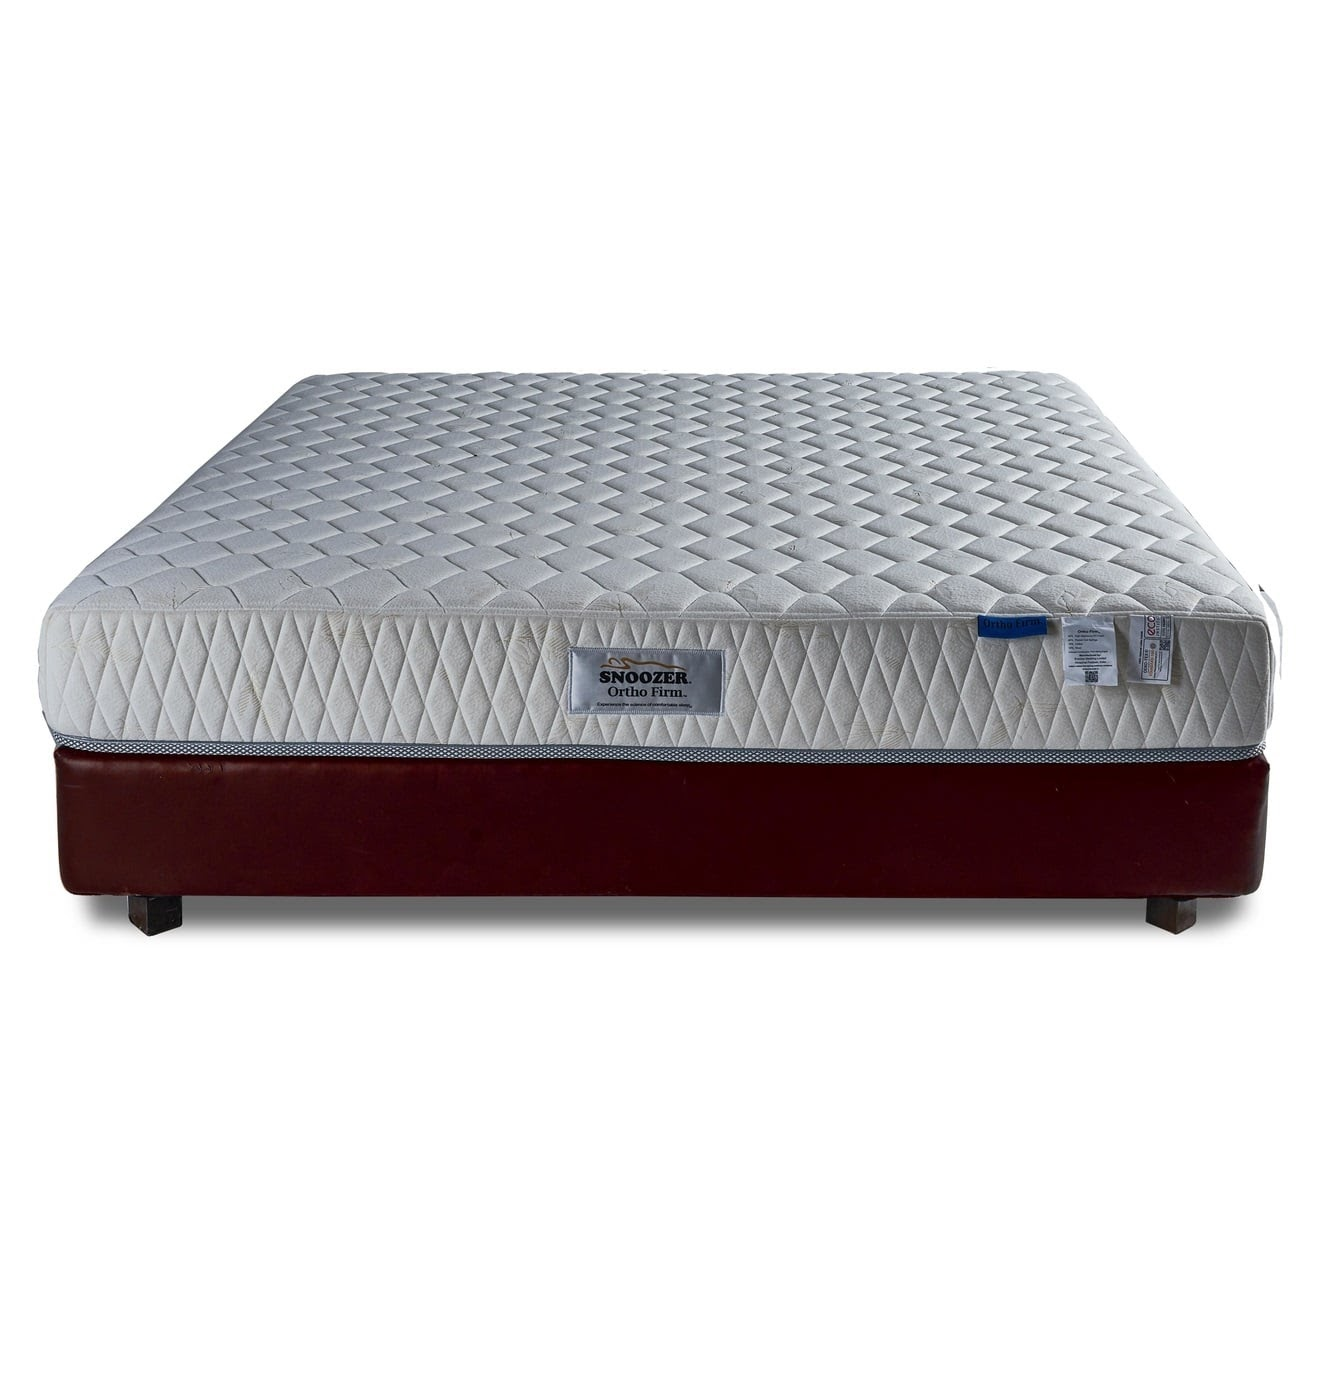 Some of the Many Advantages of Sleeping on an Orthopaedic Mattress